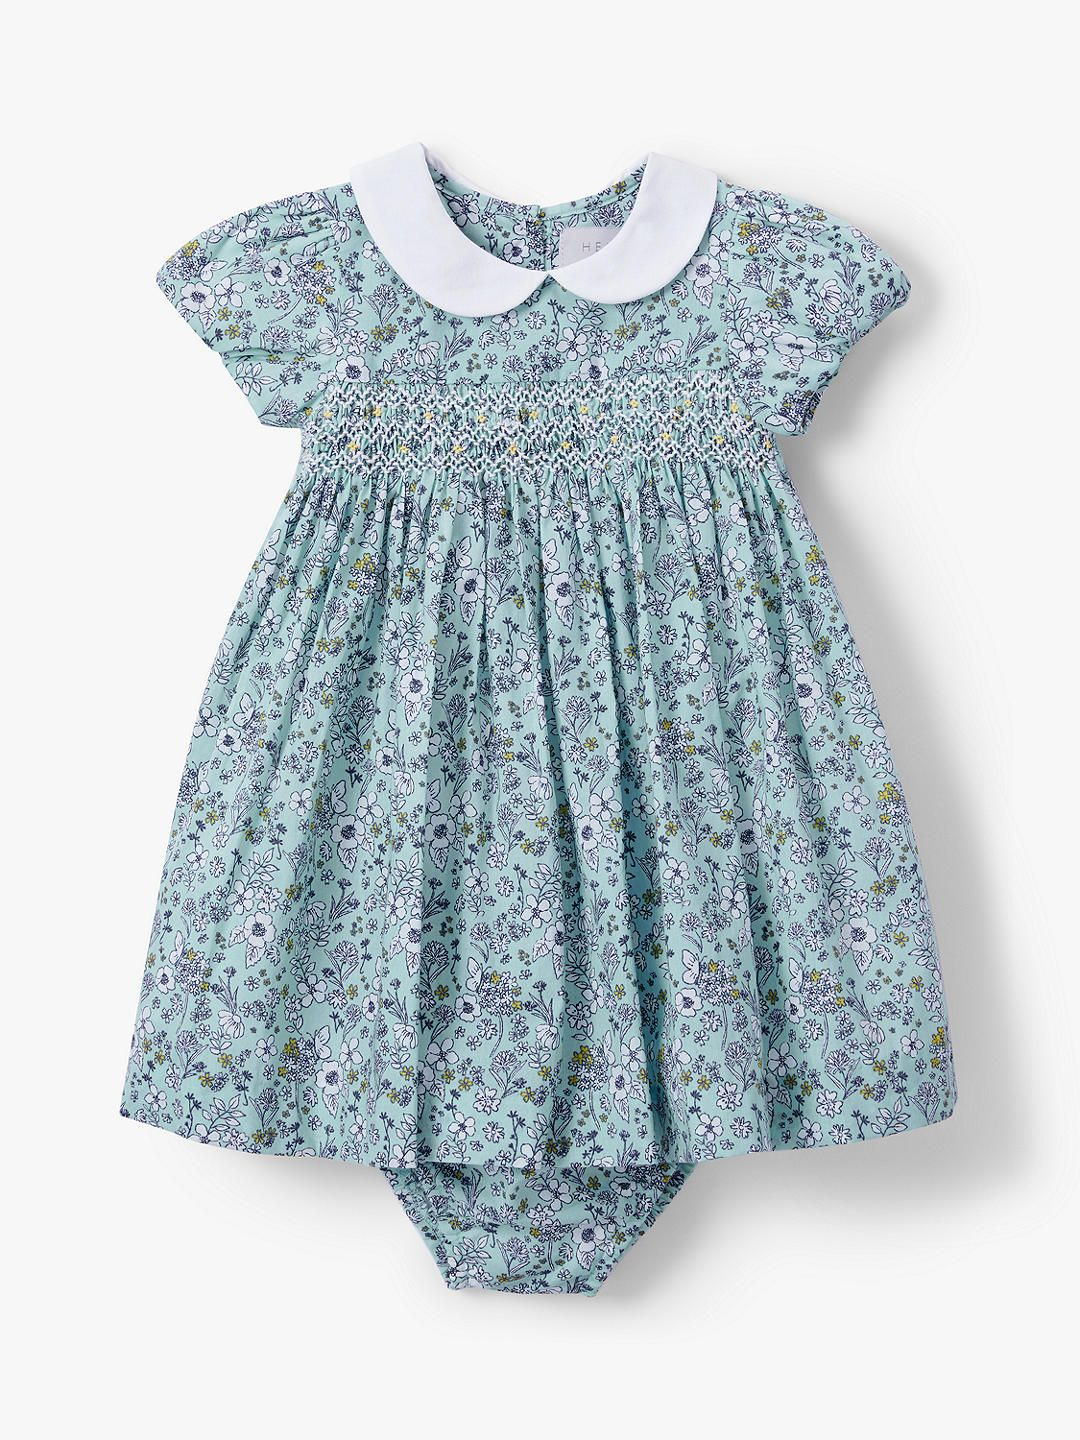 94d2b7b9a BuyJohn Lewis & Partners Heirloom Collection Ditsy Floral Dress and  Knickers Set, Blue, 18-24 months Online at johnlewis.com